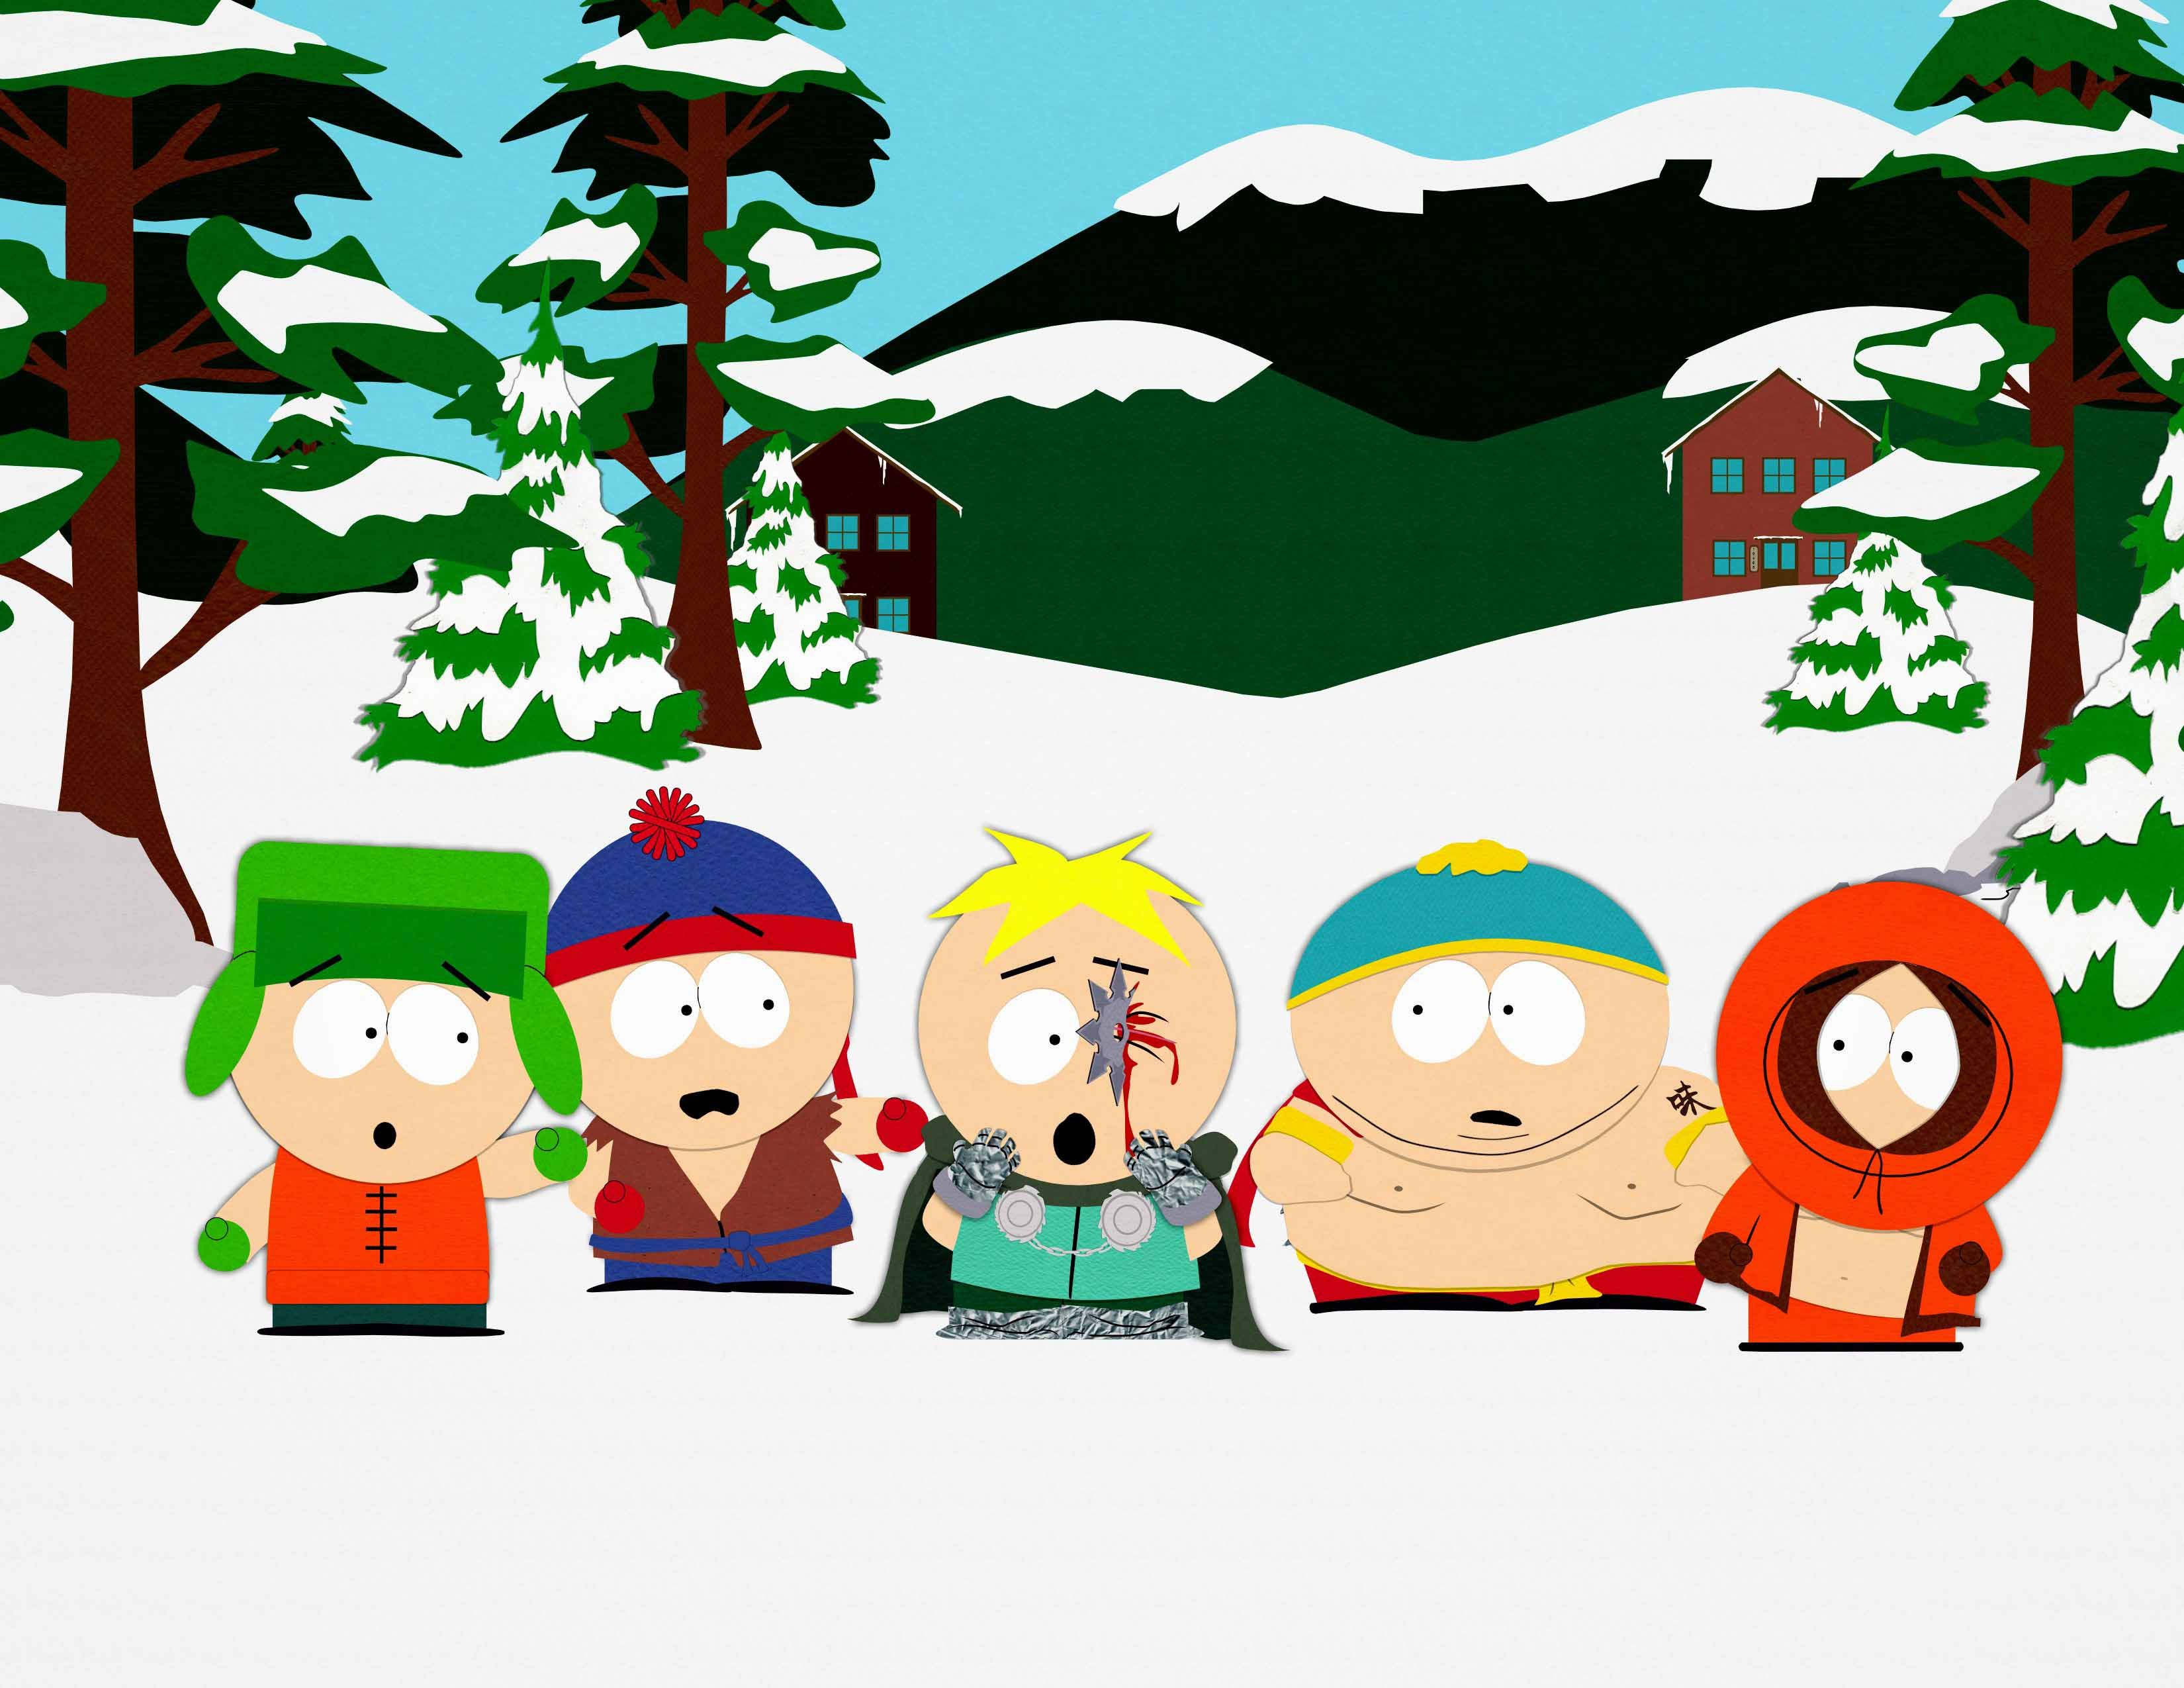 South Park: The 27 most kickass episodes ever